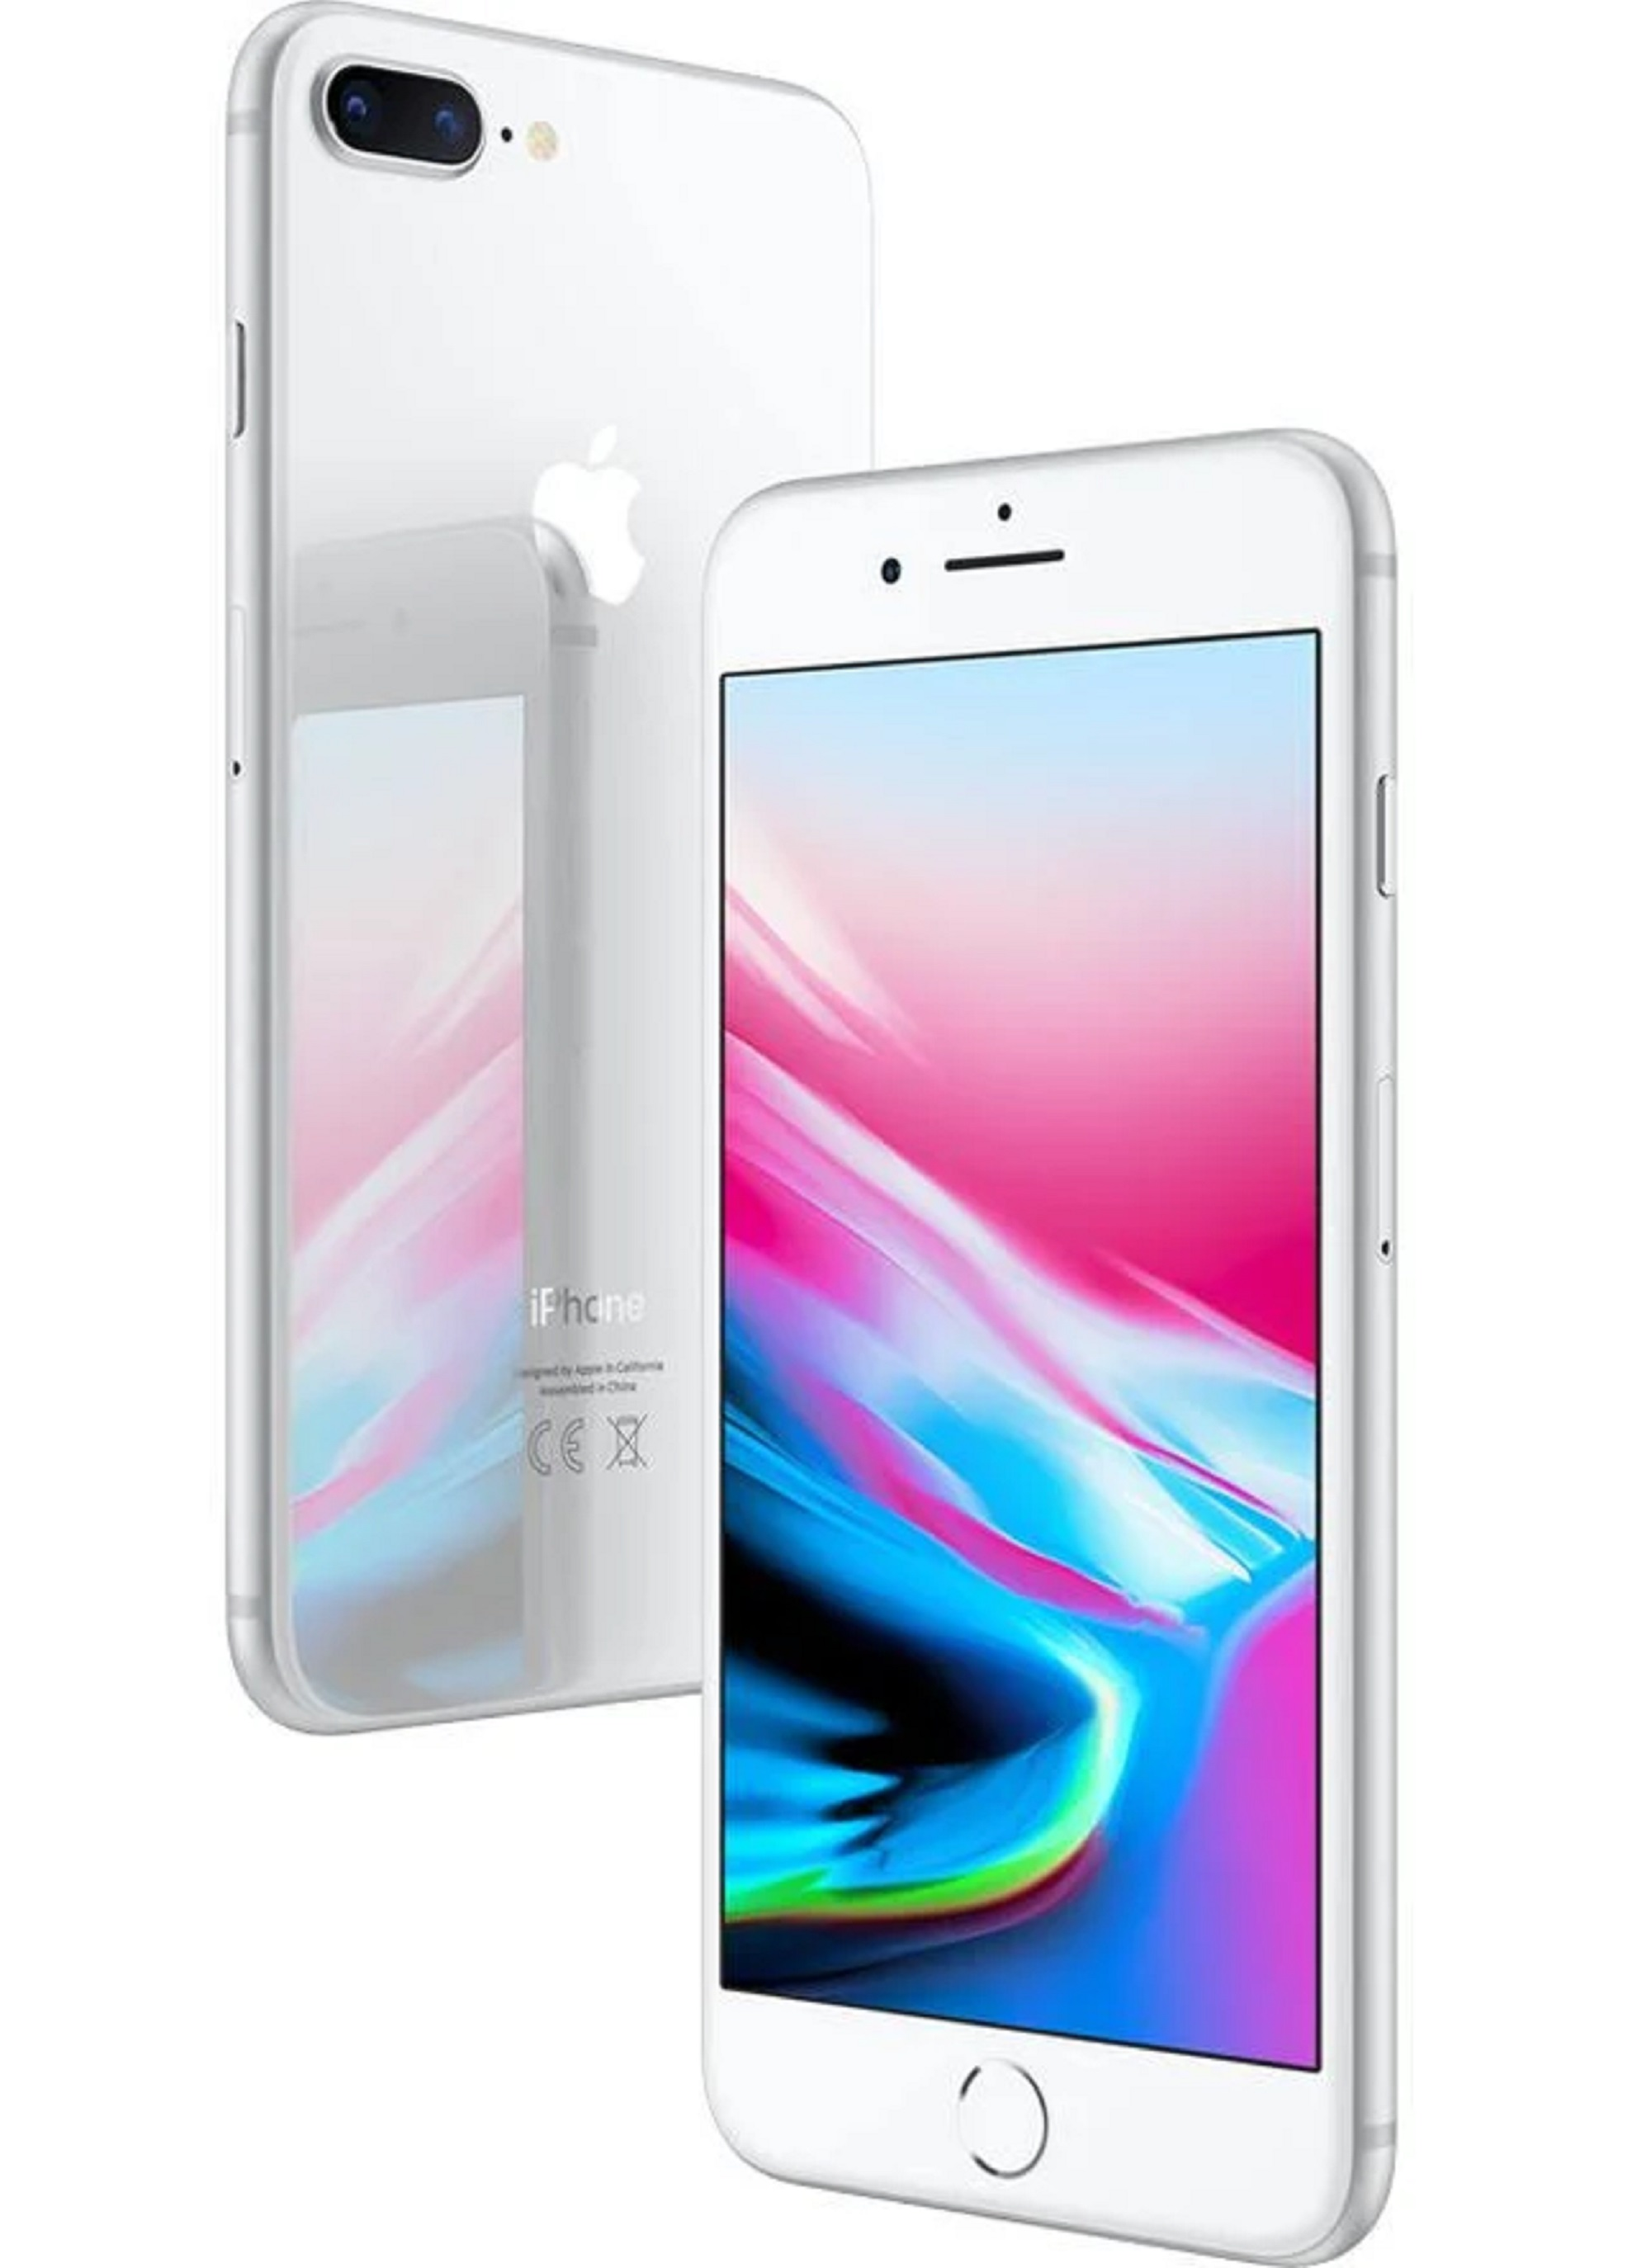 thumbnail 6 - Apple iPhone 8 Plus 64GB Factory Unlocked Smartphone